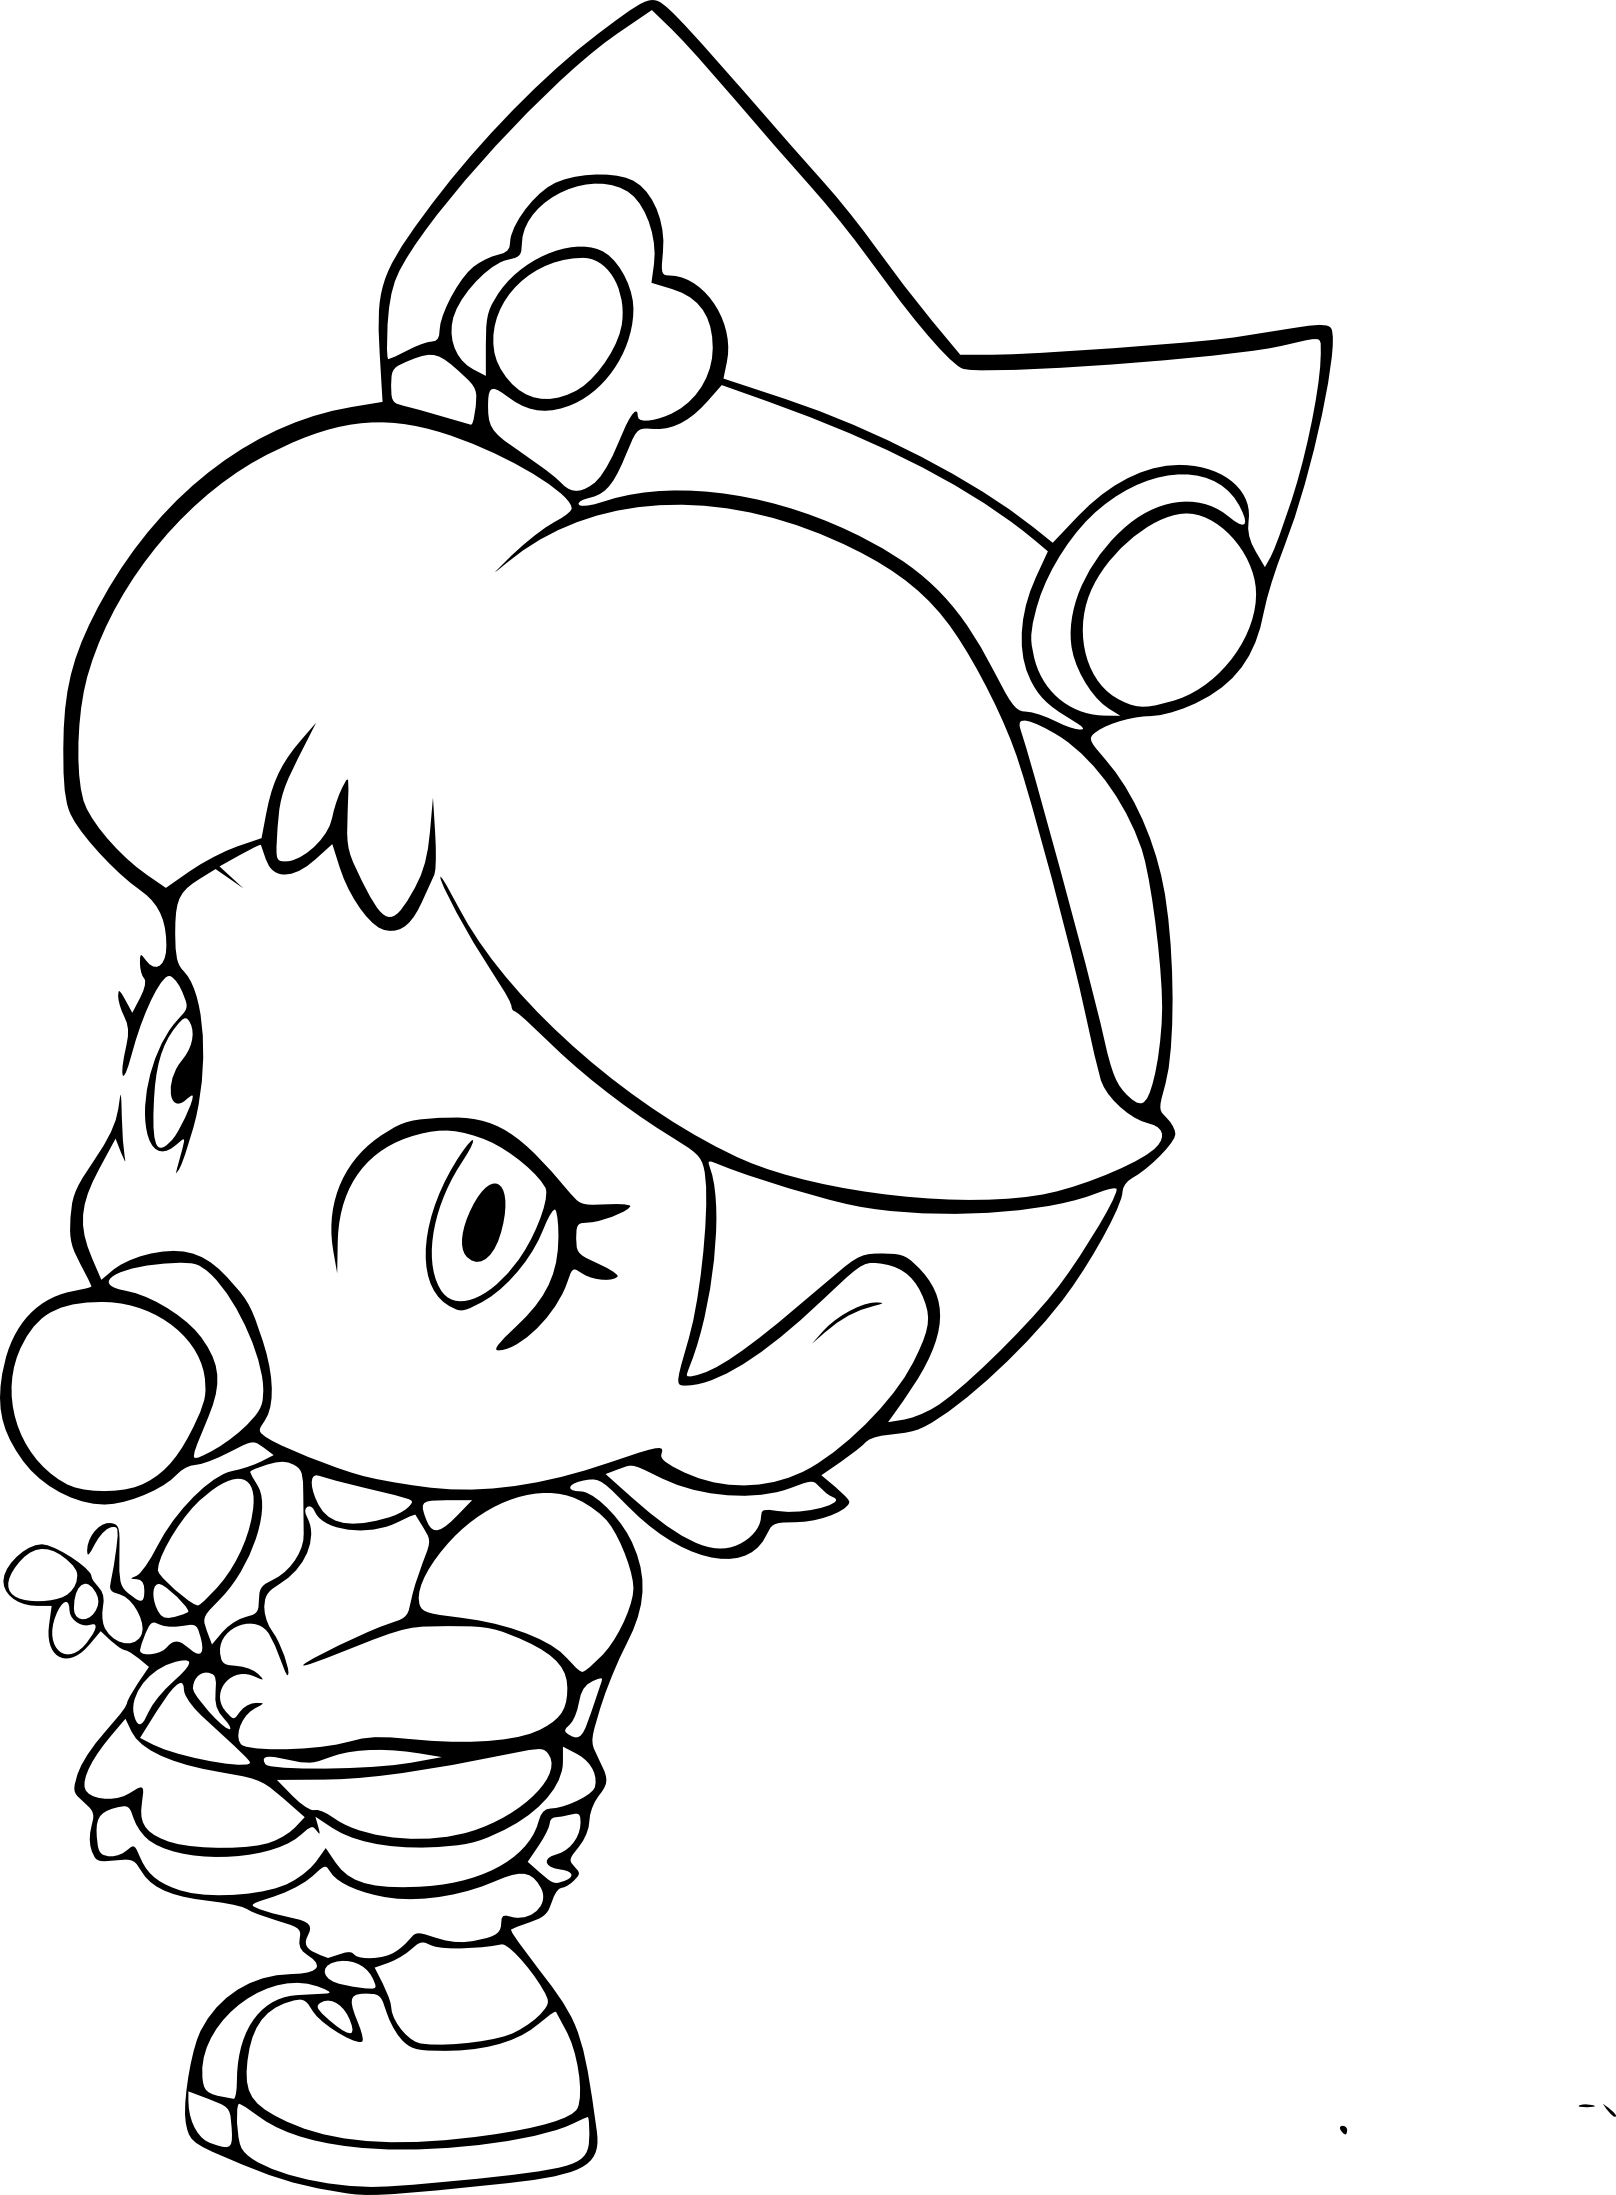 Coloriage Disney Baby.21 Baby Disney Coloring Pages Compilation Free Coloring Pages